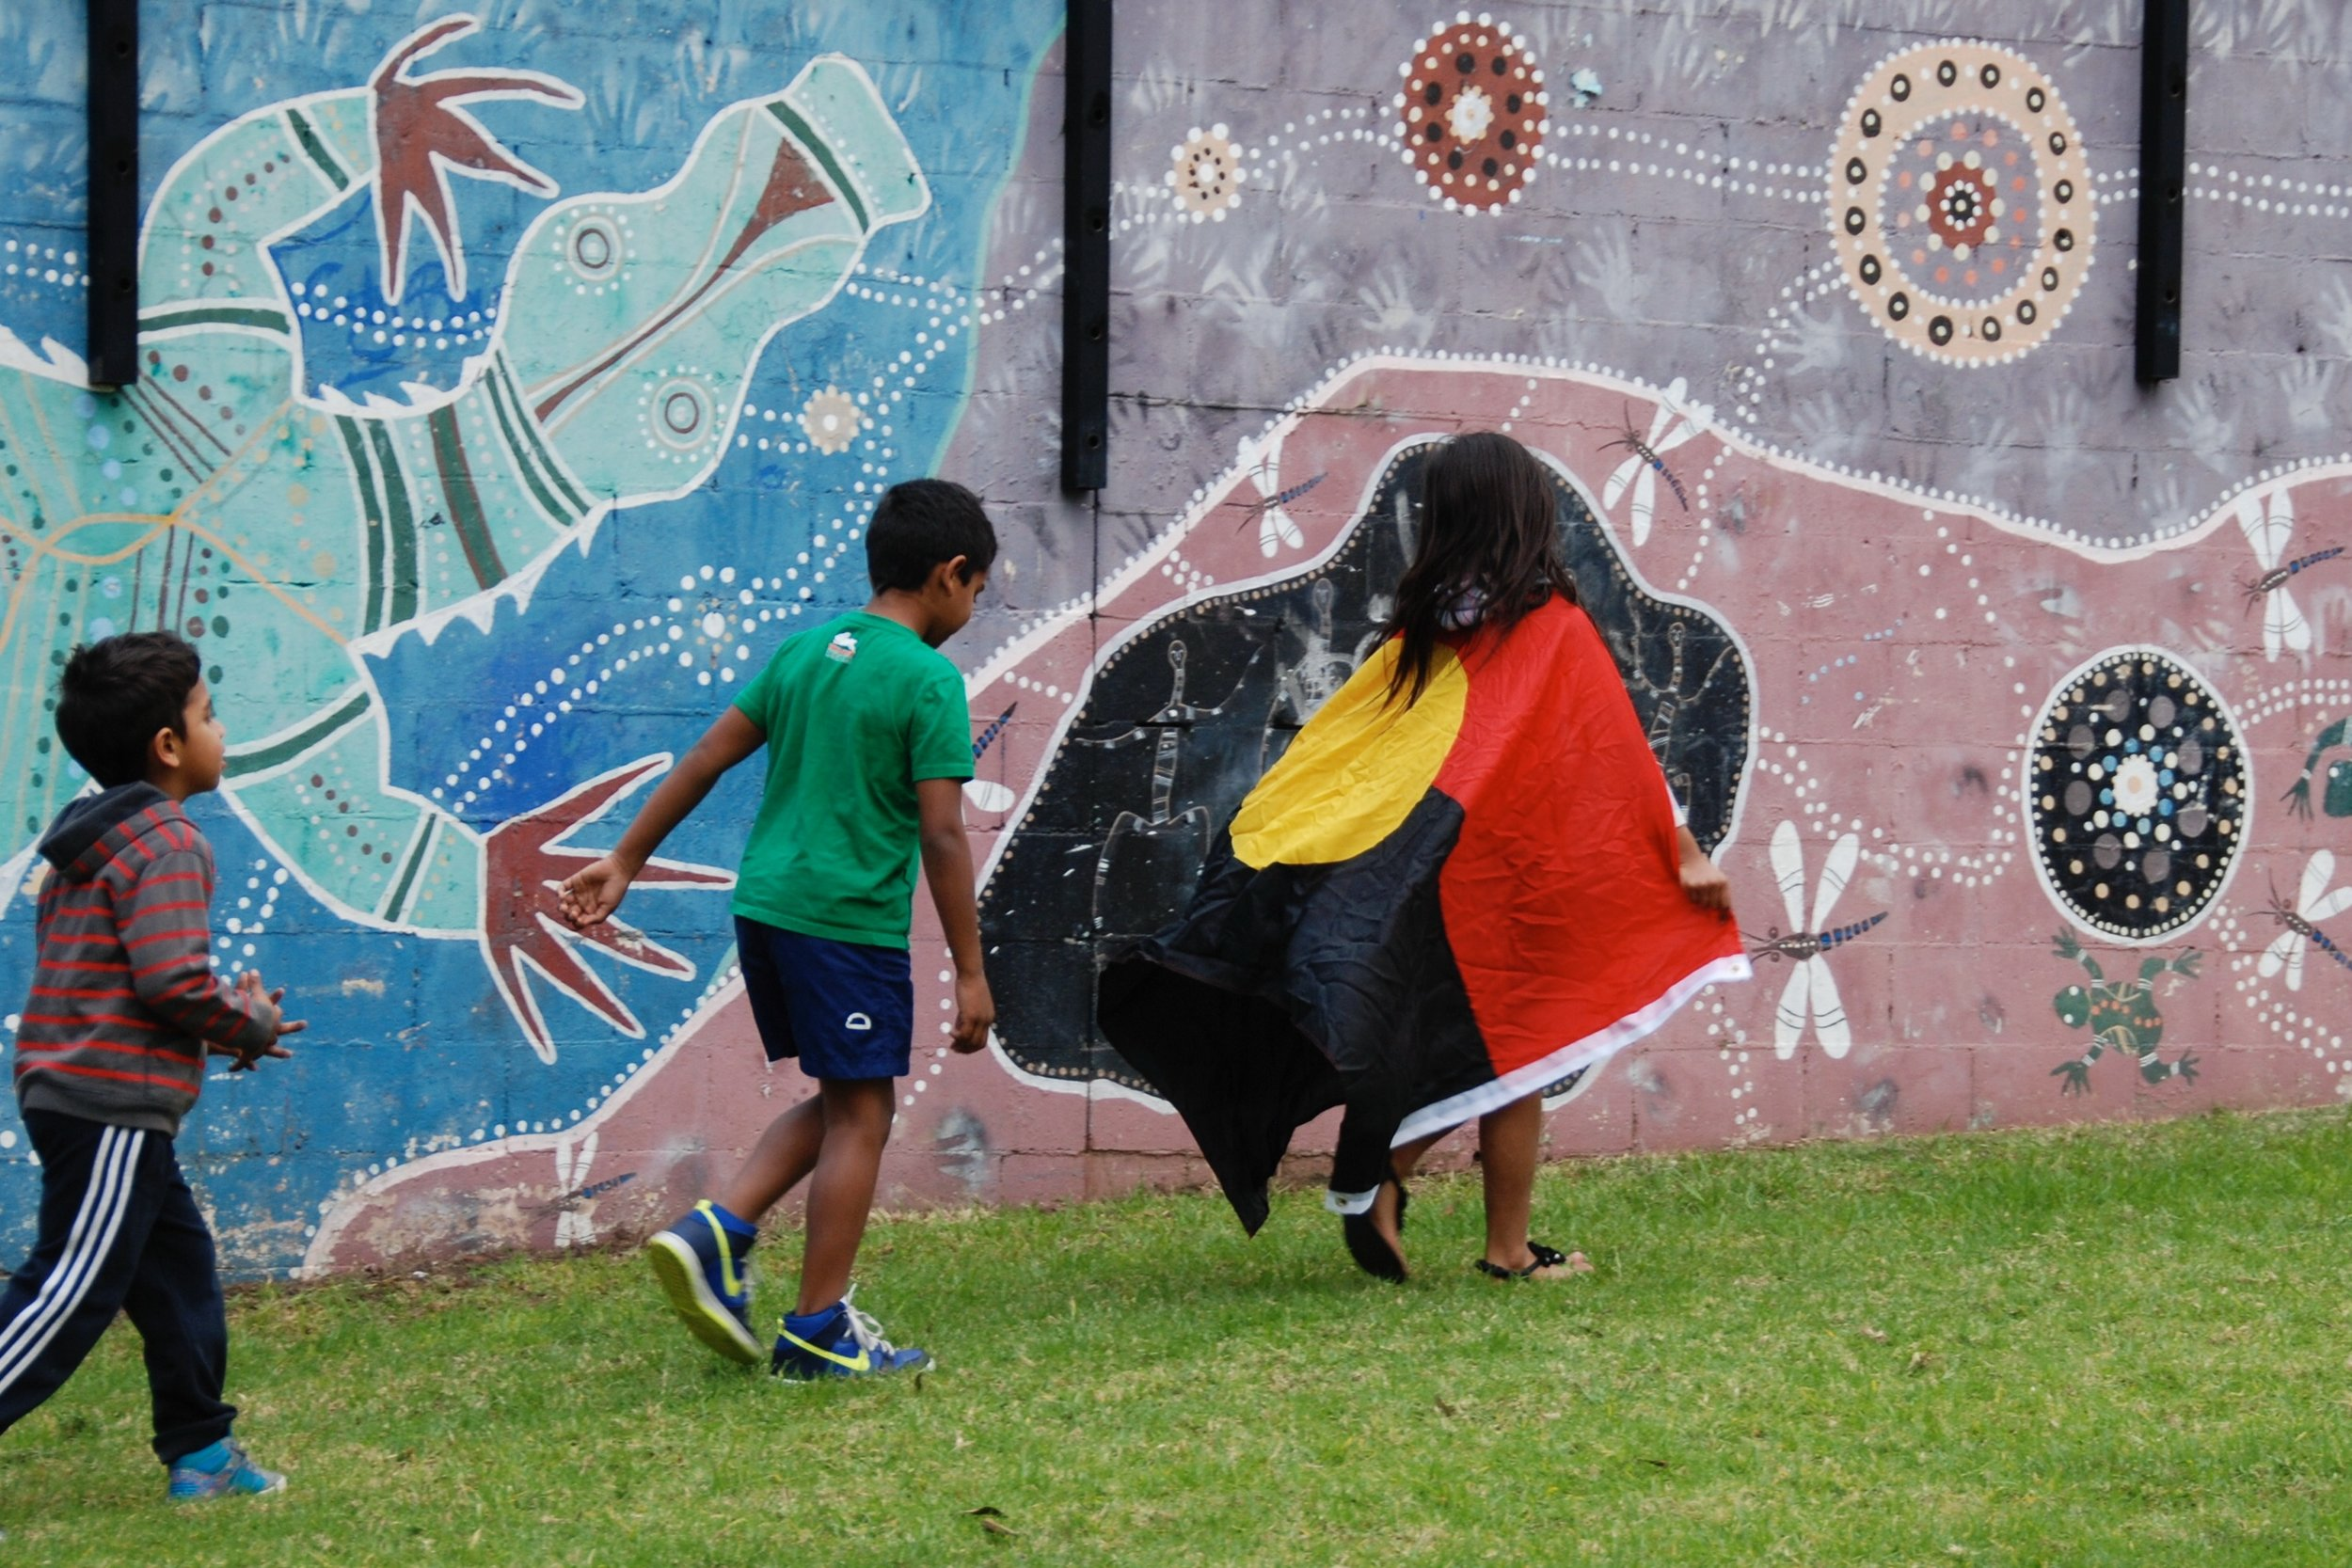 Walking down Eveleigh St in Redfern past the Aboriginal painted mural and wearing the Aboriginal flag